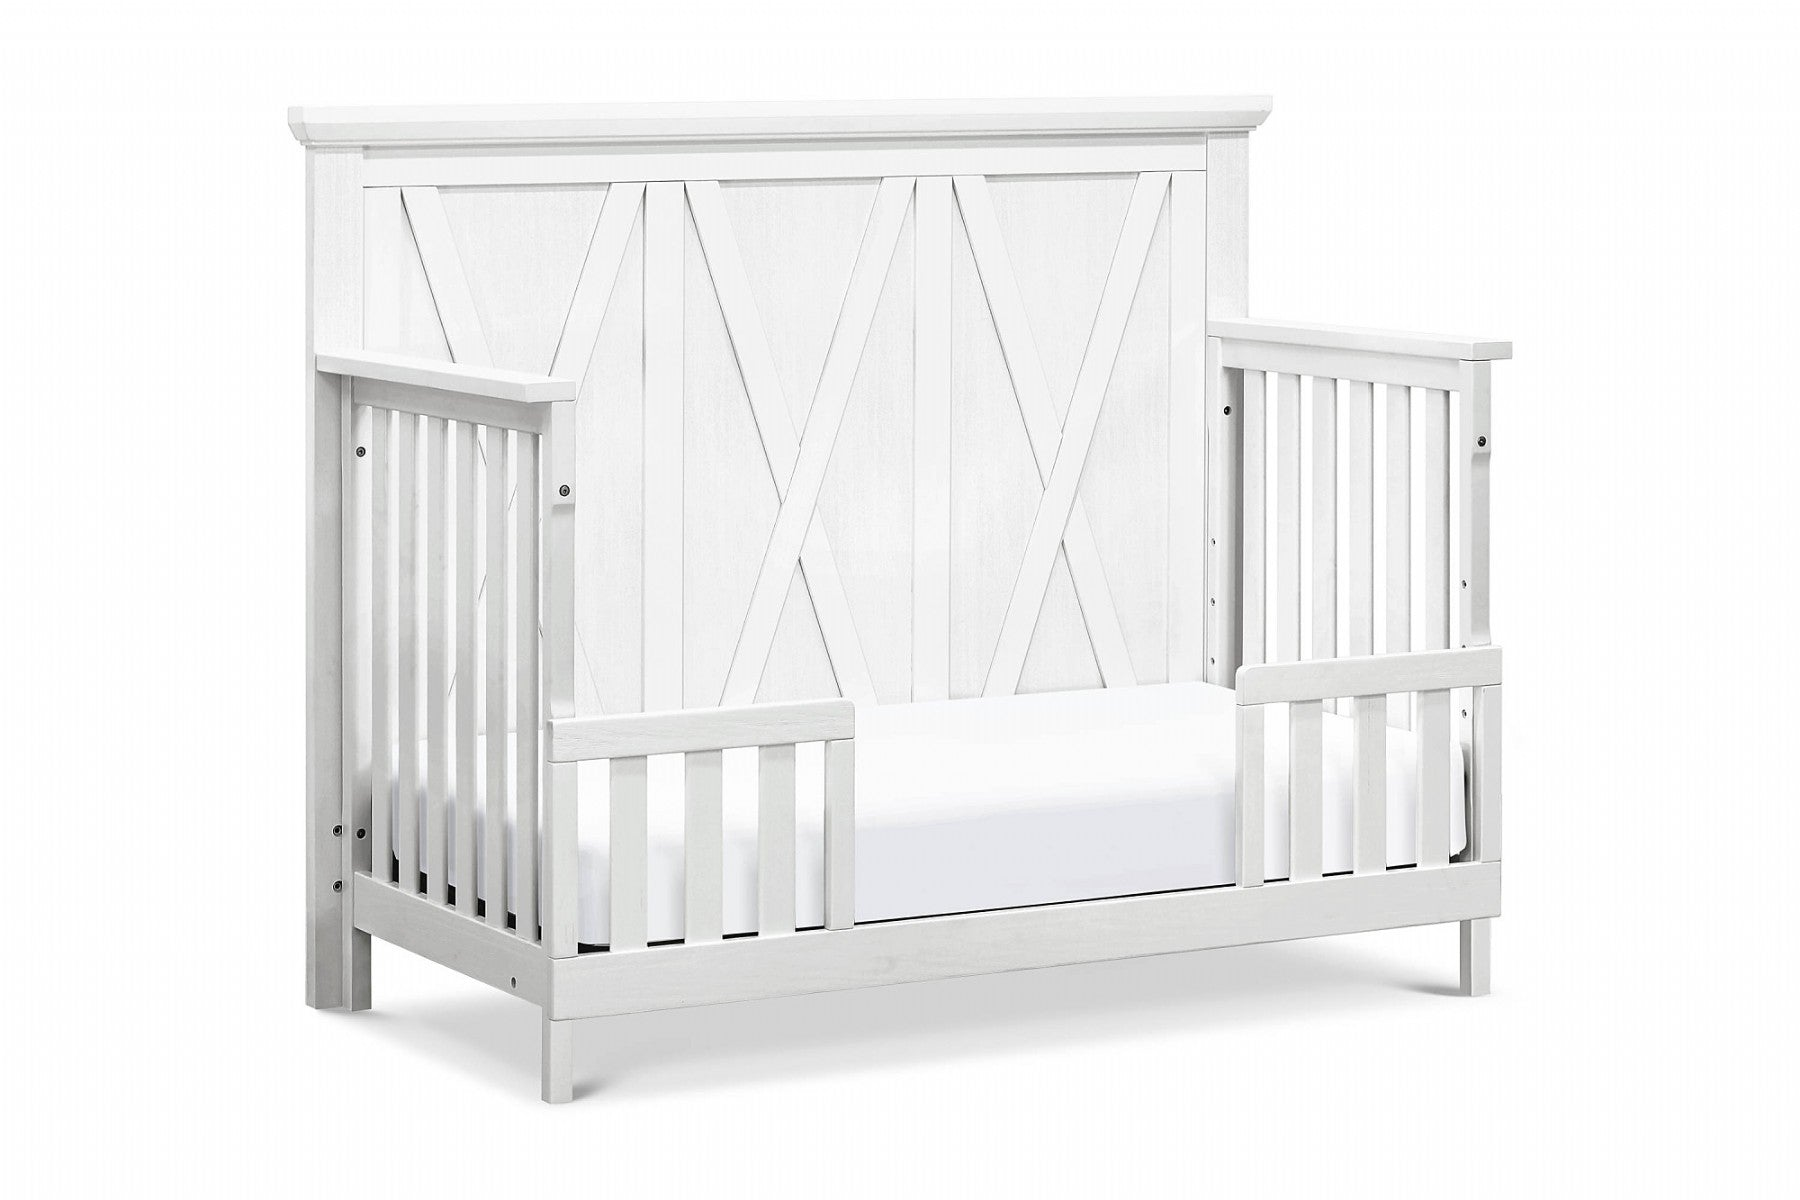 awesome solano walmart underneath com graco jcpenney recalled drawer pebble million photo of in best cribs baby x convertible furniture crib for gray drawers dollar with